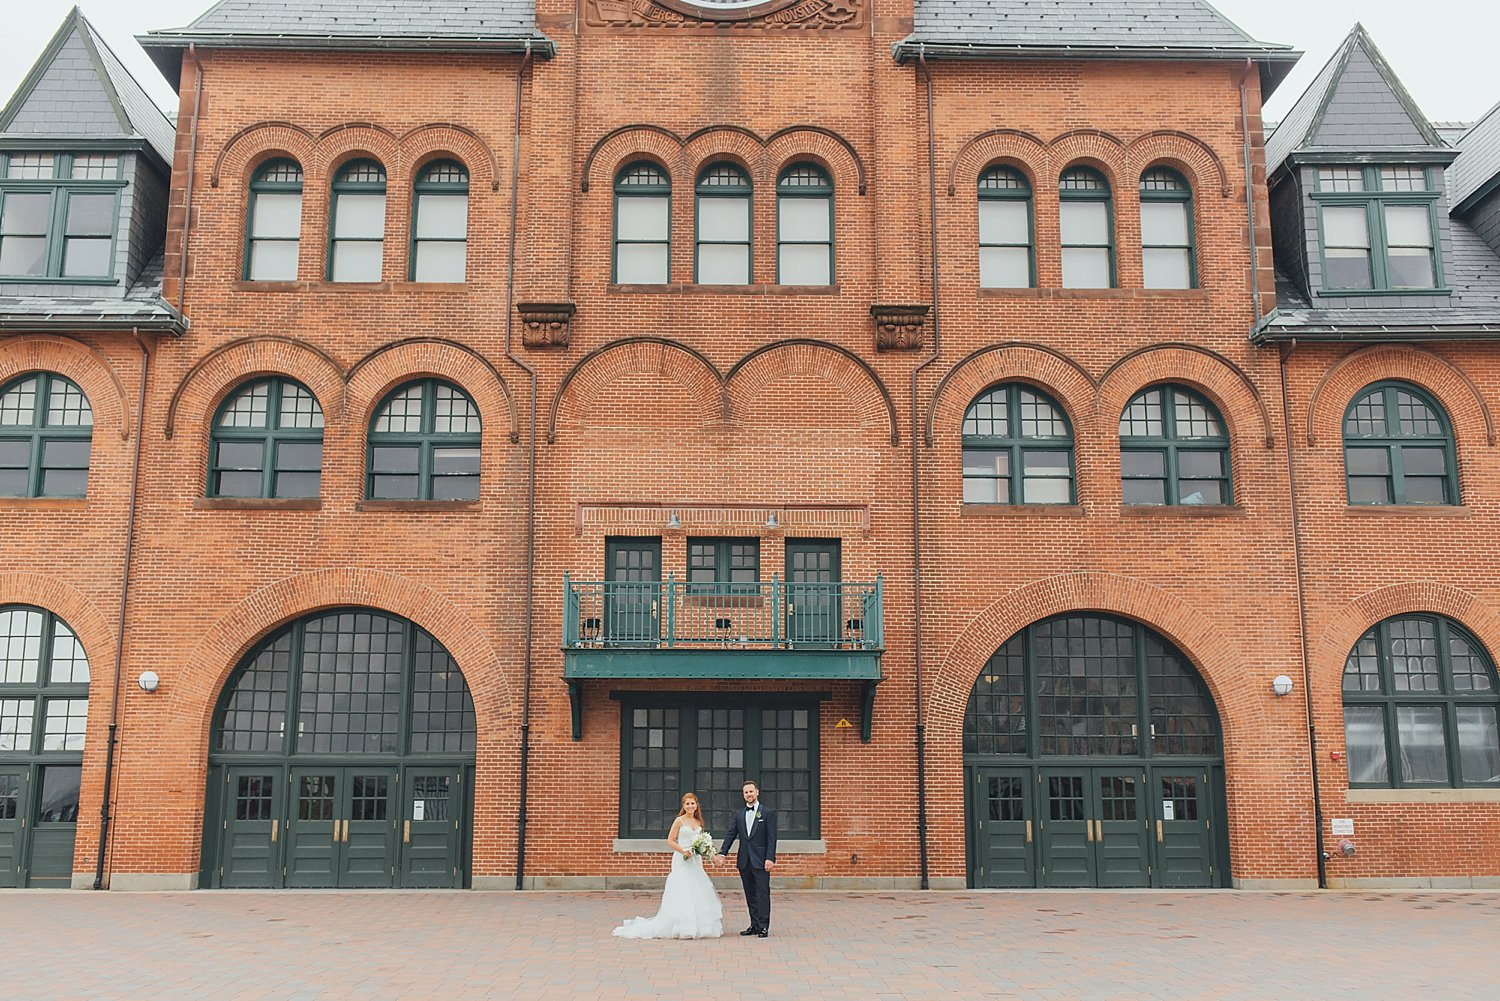 nyc-wedding-photography-nj-tri-state-cinematography-intothestory-by-moo-jae_0300.jpg